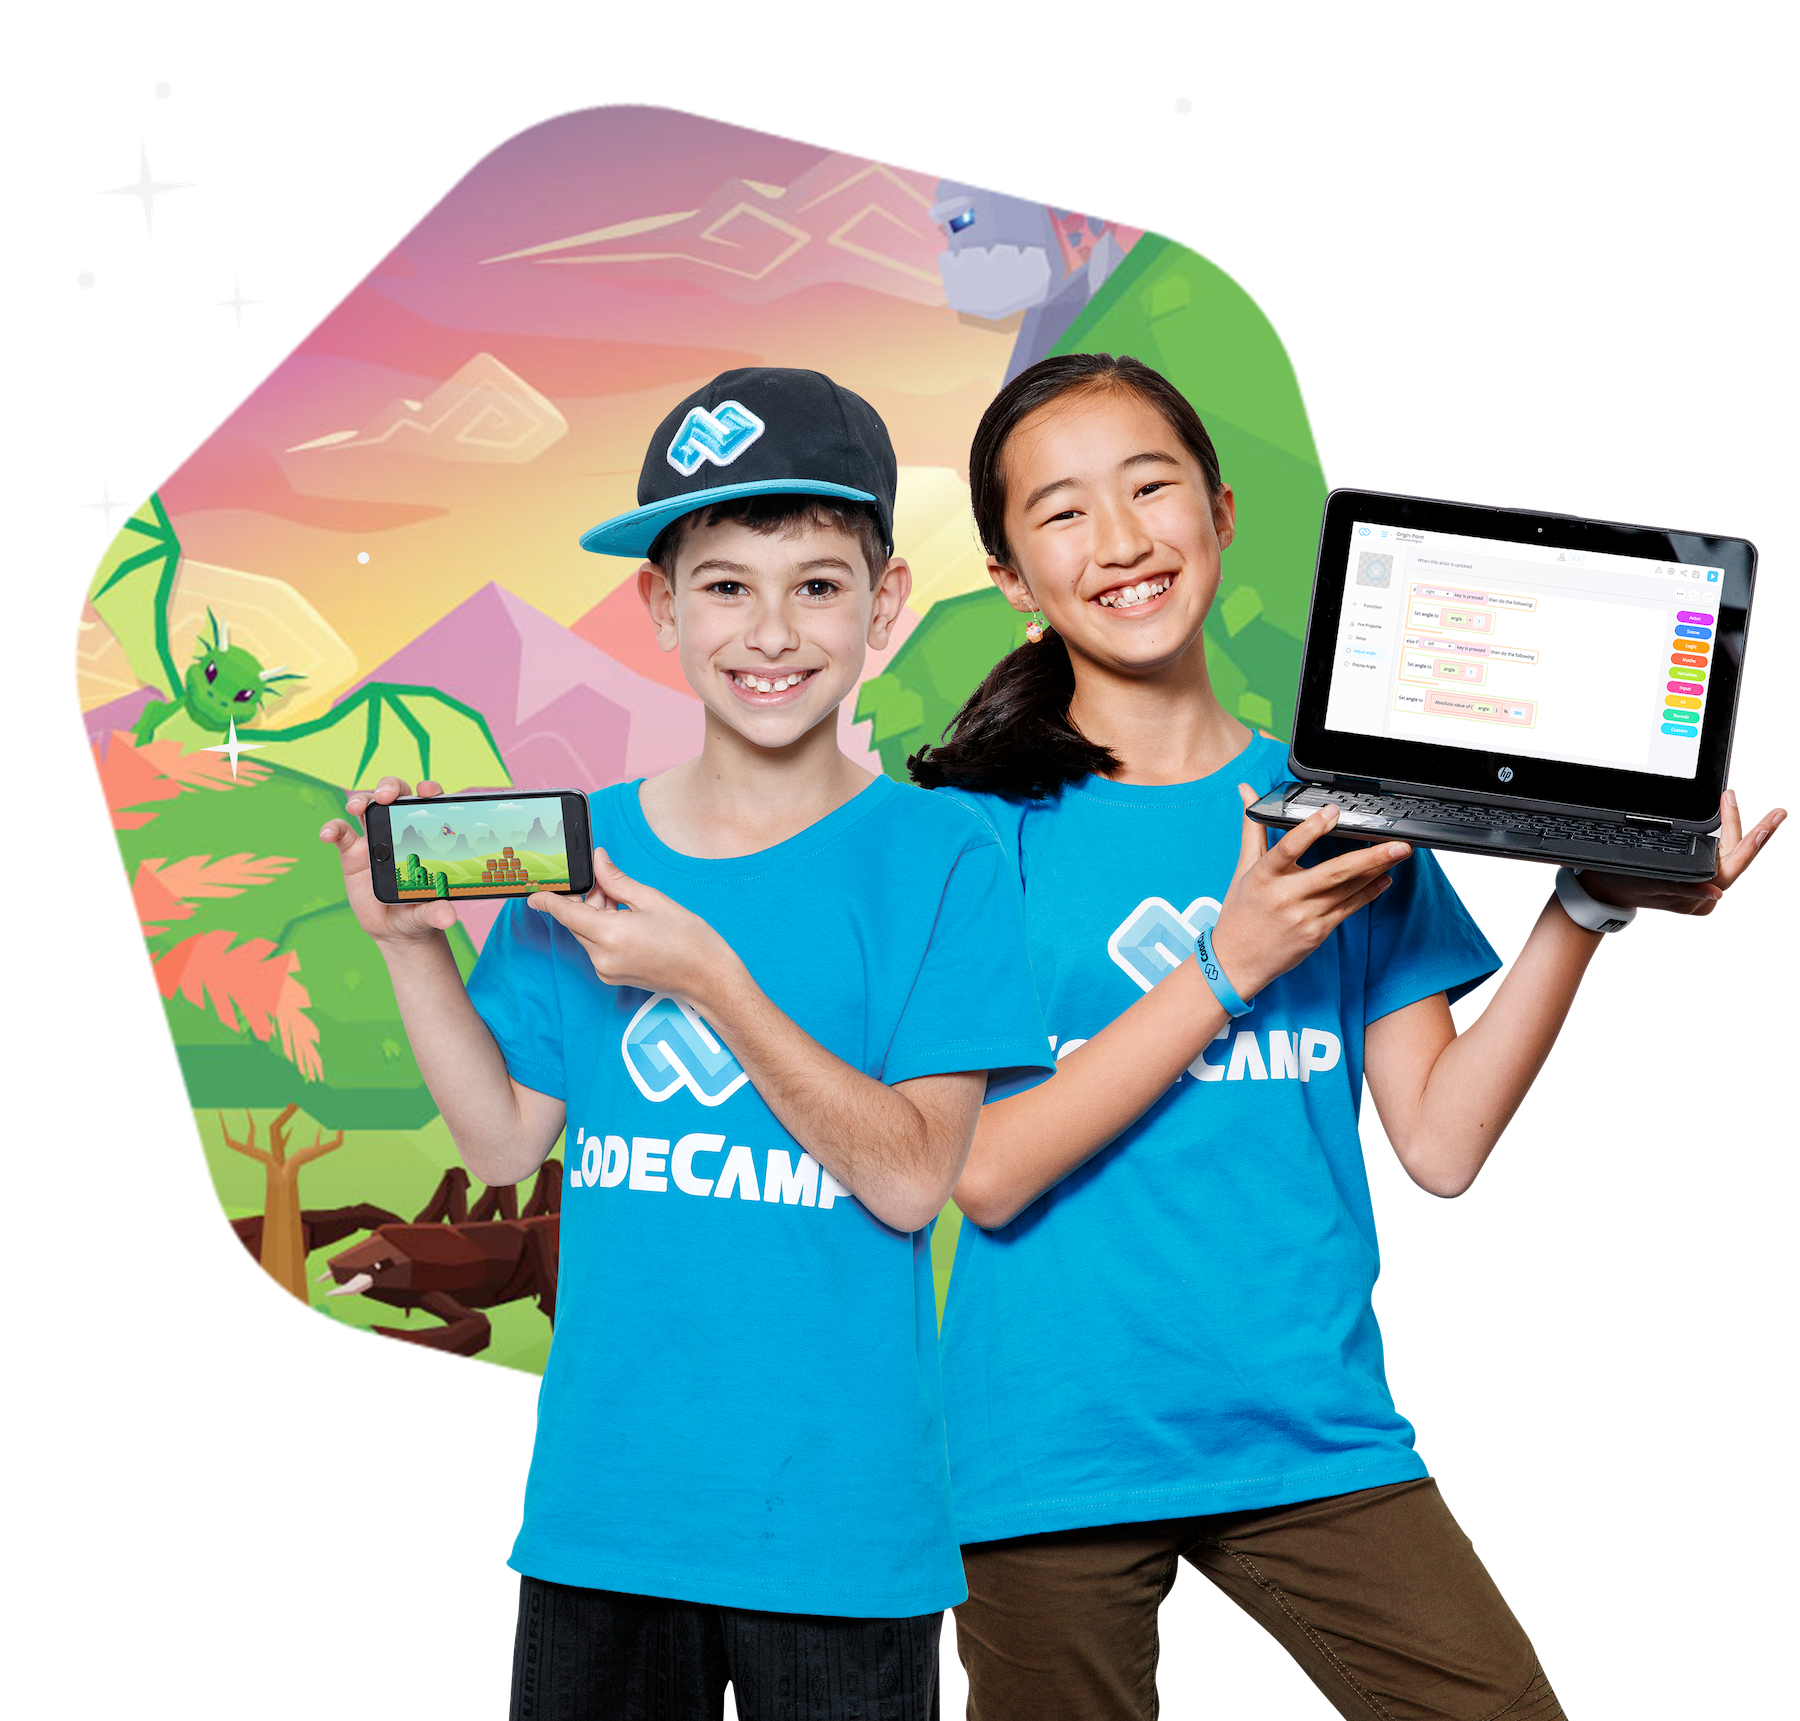 Code Camp | Coding for Kids